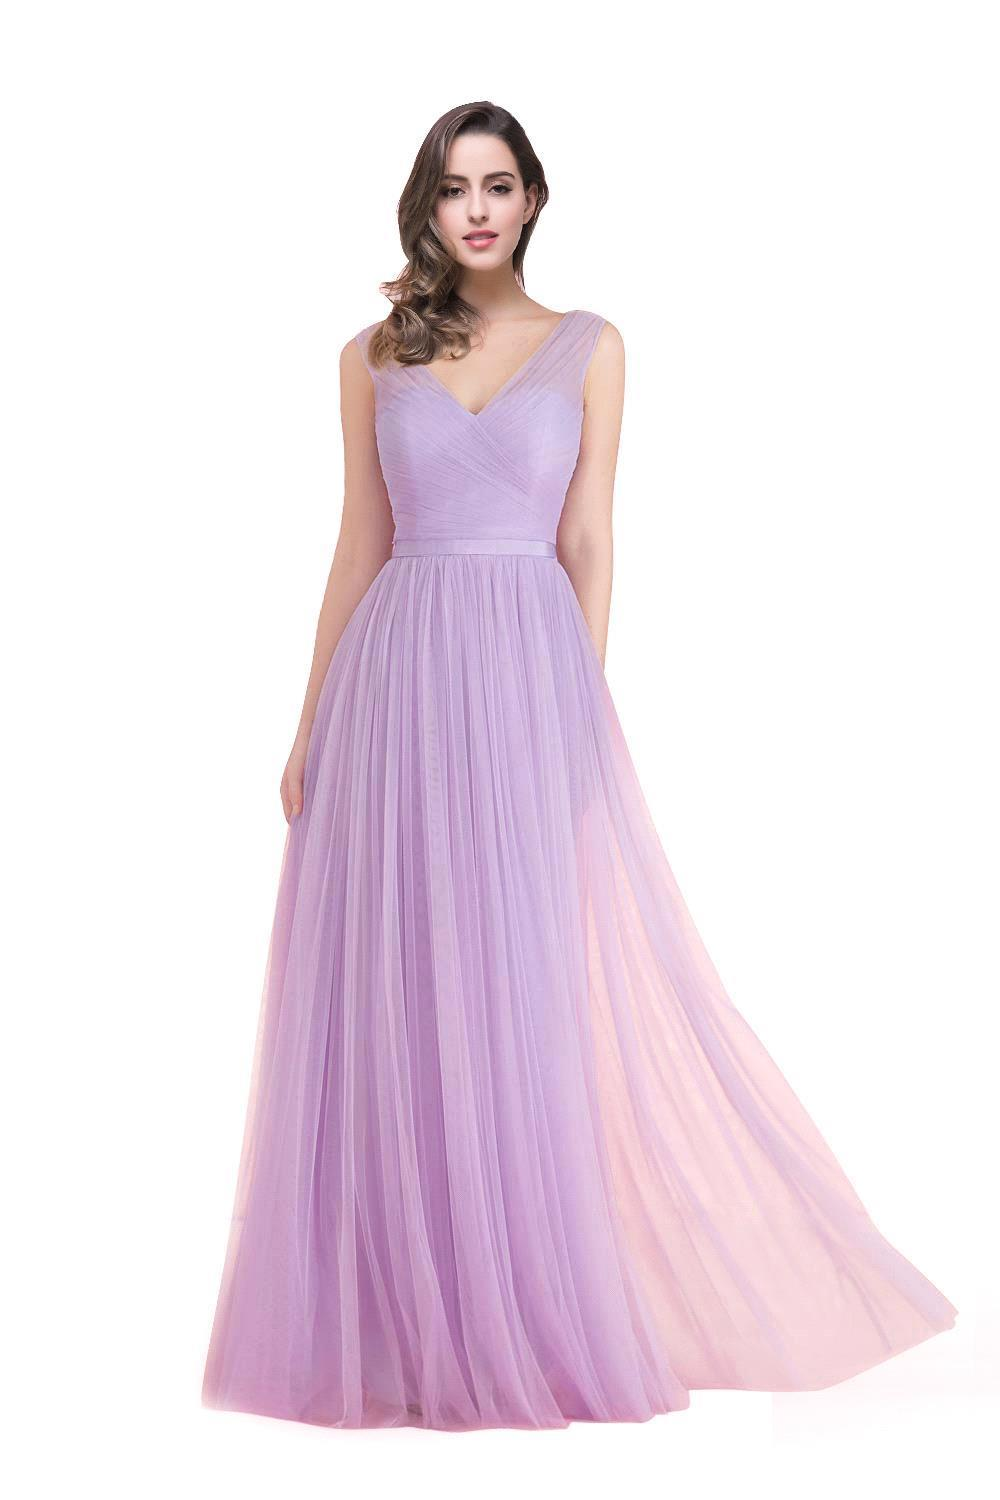 Wedding Lilac Dress compare prices on lilac dress online shoppingbuy low price in stock cheap crepe pleat girls junior camo bridesmaid dresses 2017 a line floor length